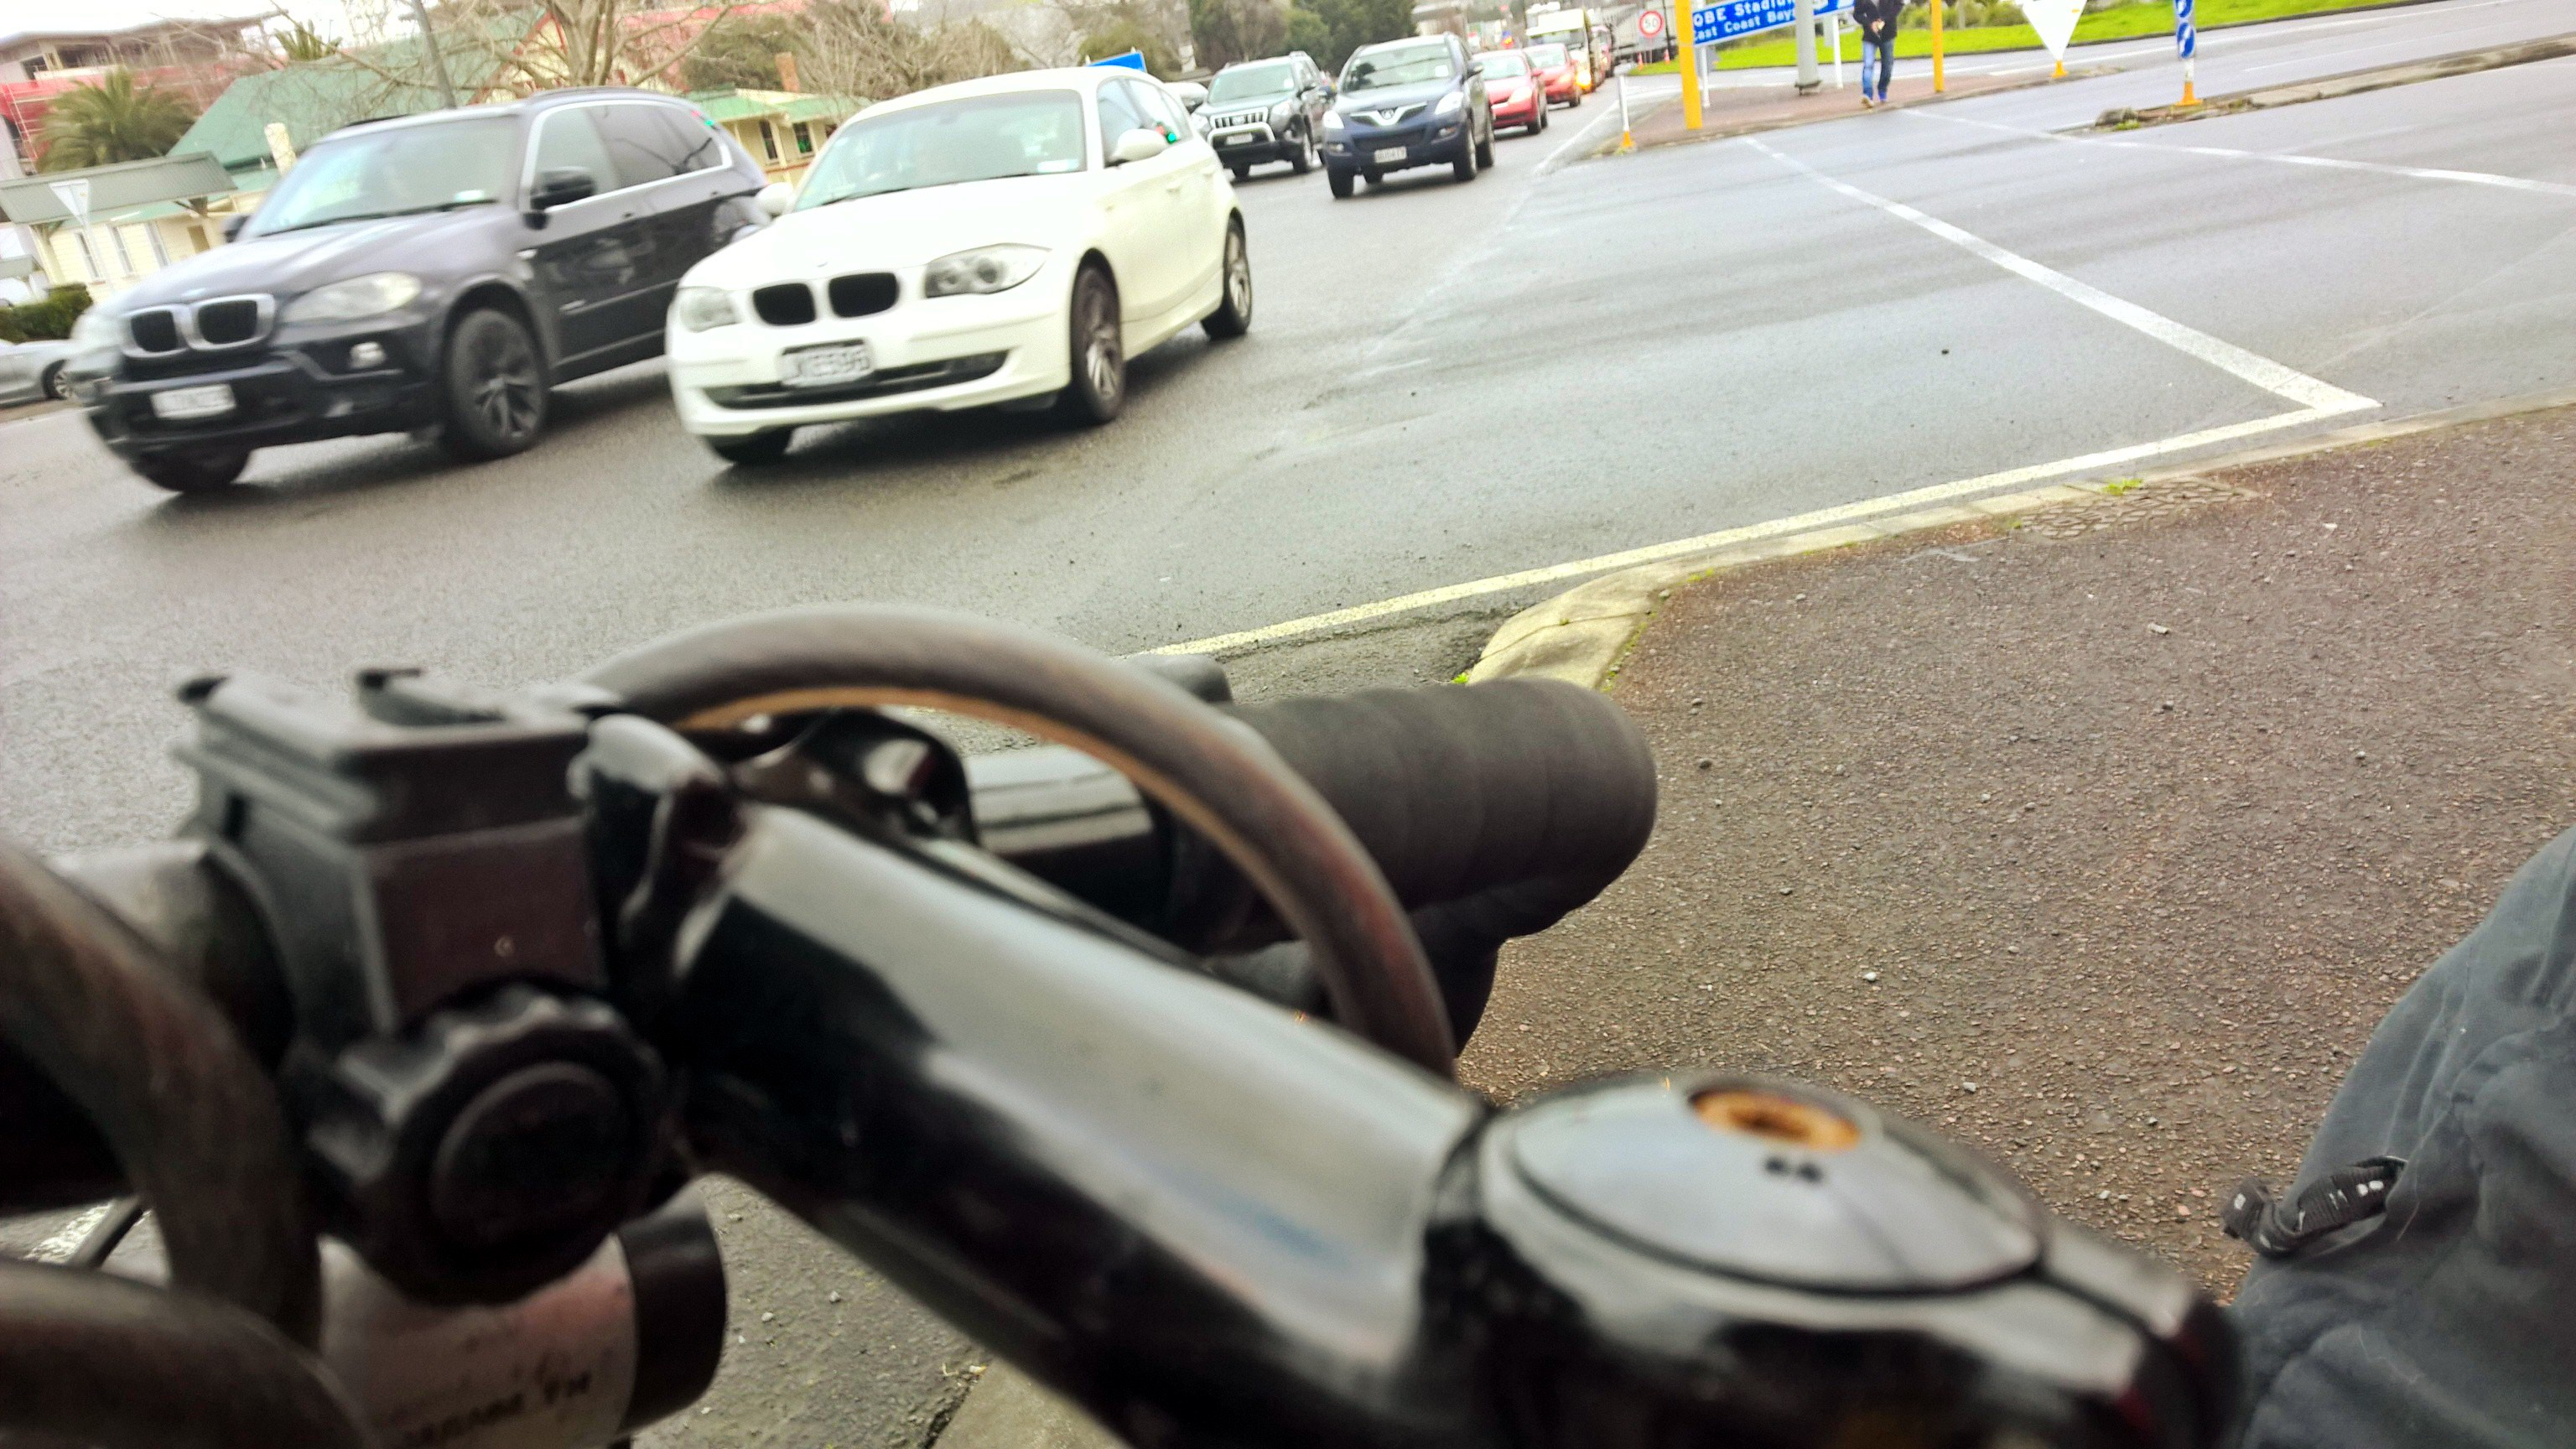 Featured image: The perception that cycling is dangerous